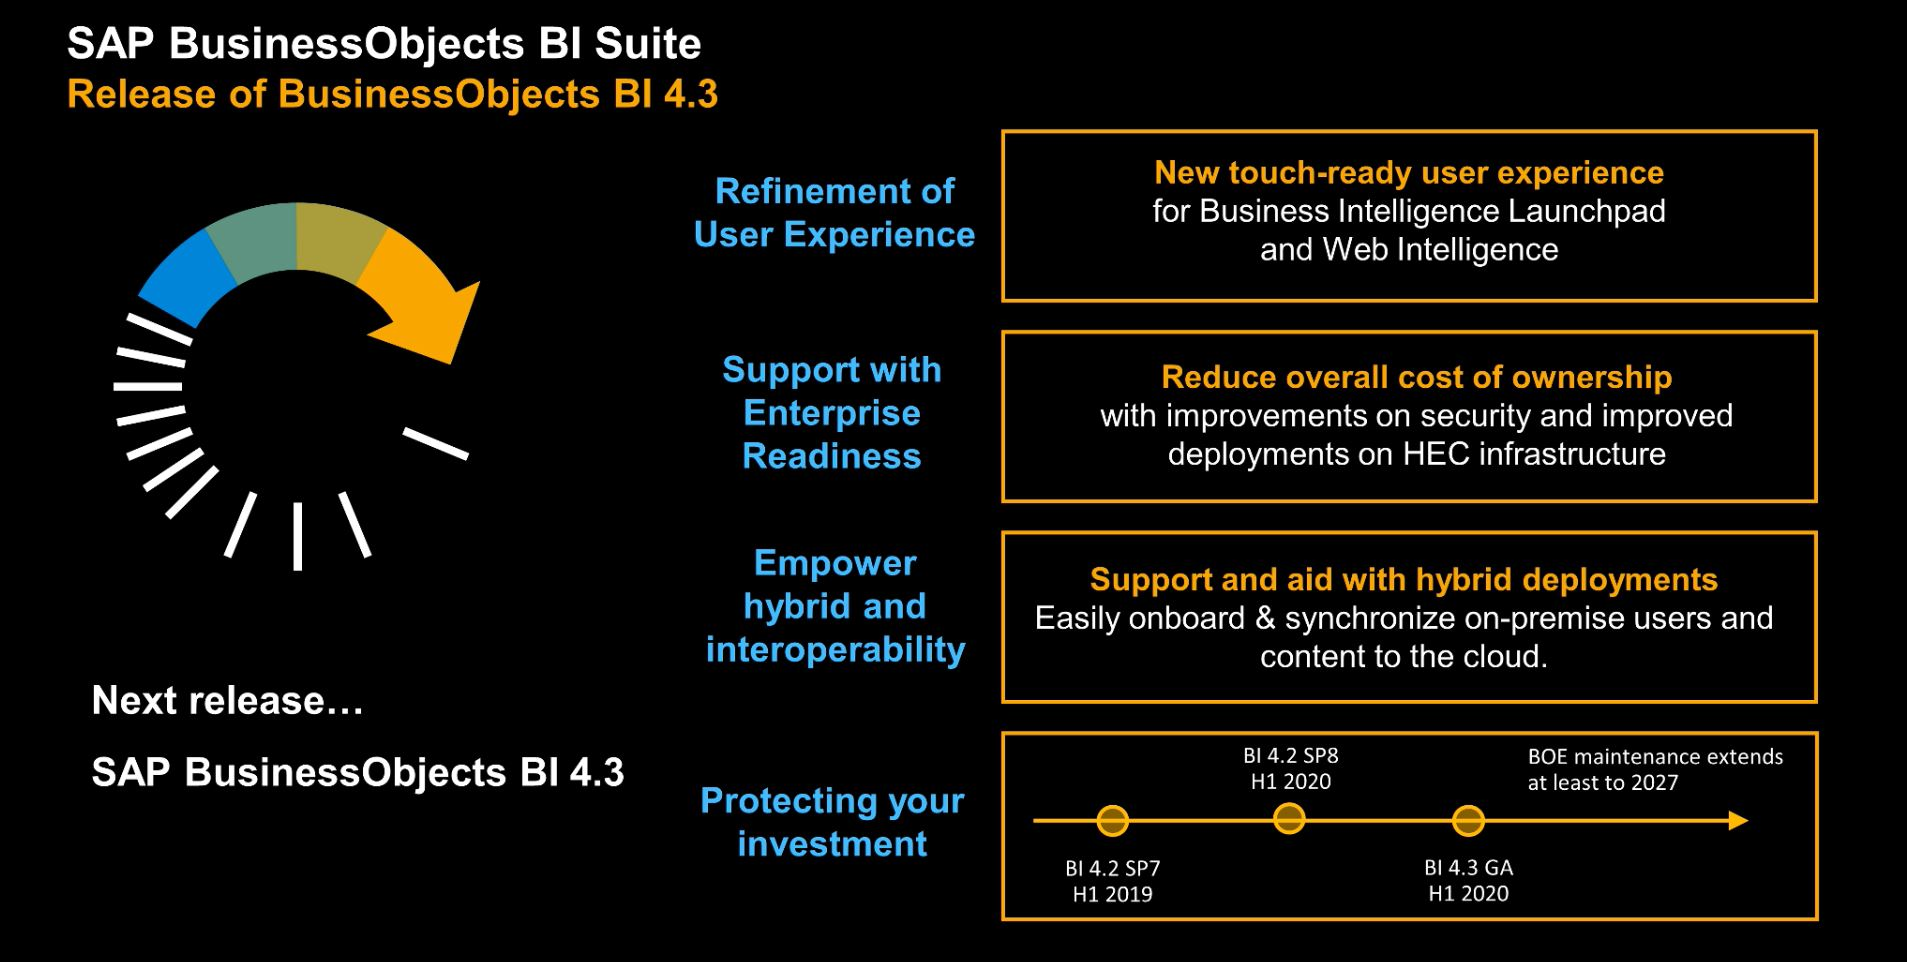 SAP%20BusinessObjects%20BI%20Suite%20Roadmap